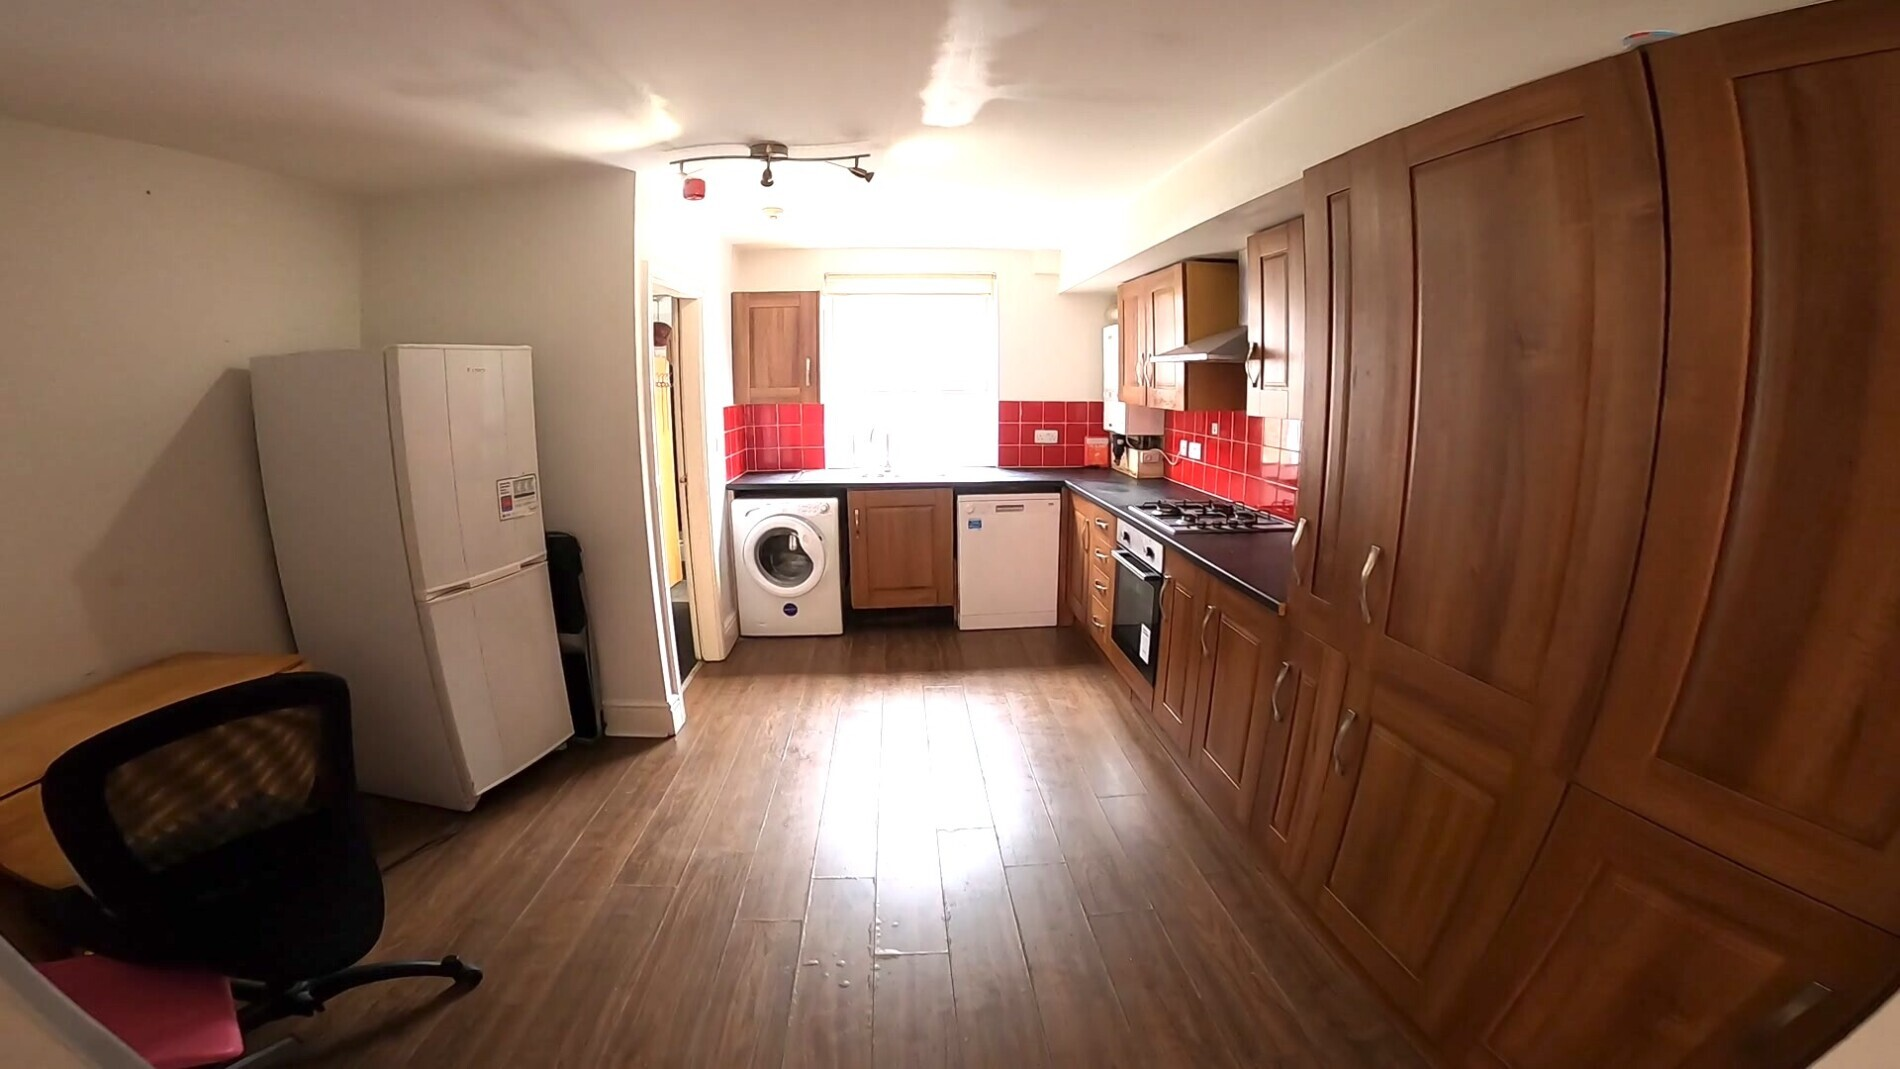 7 bedroom student house in Hyde Park, Leeds